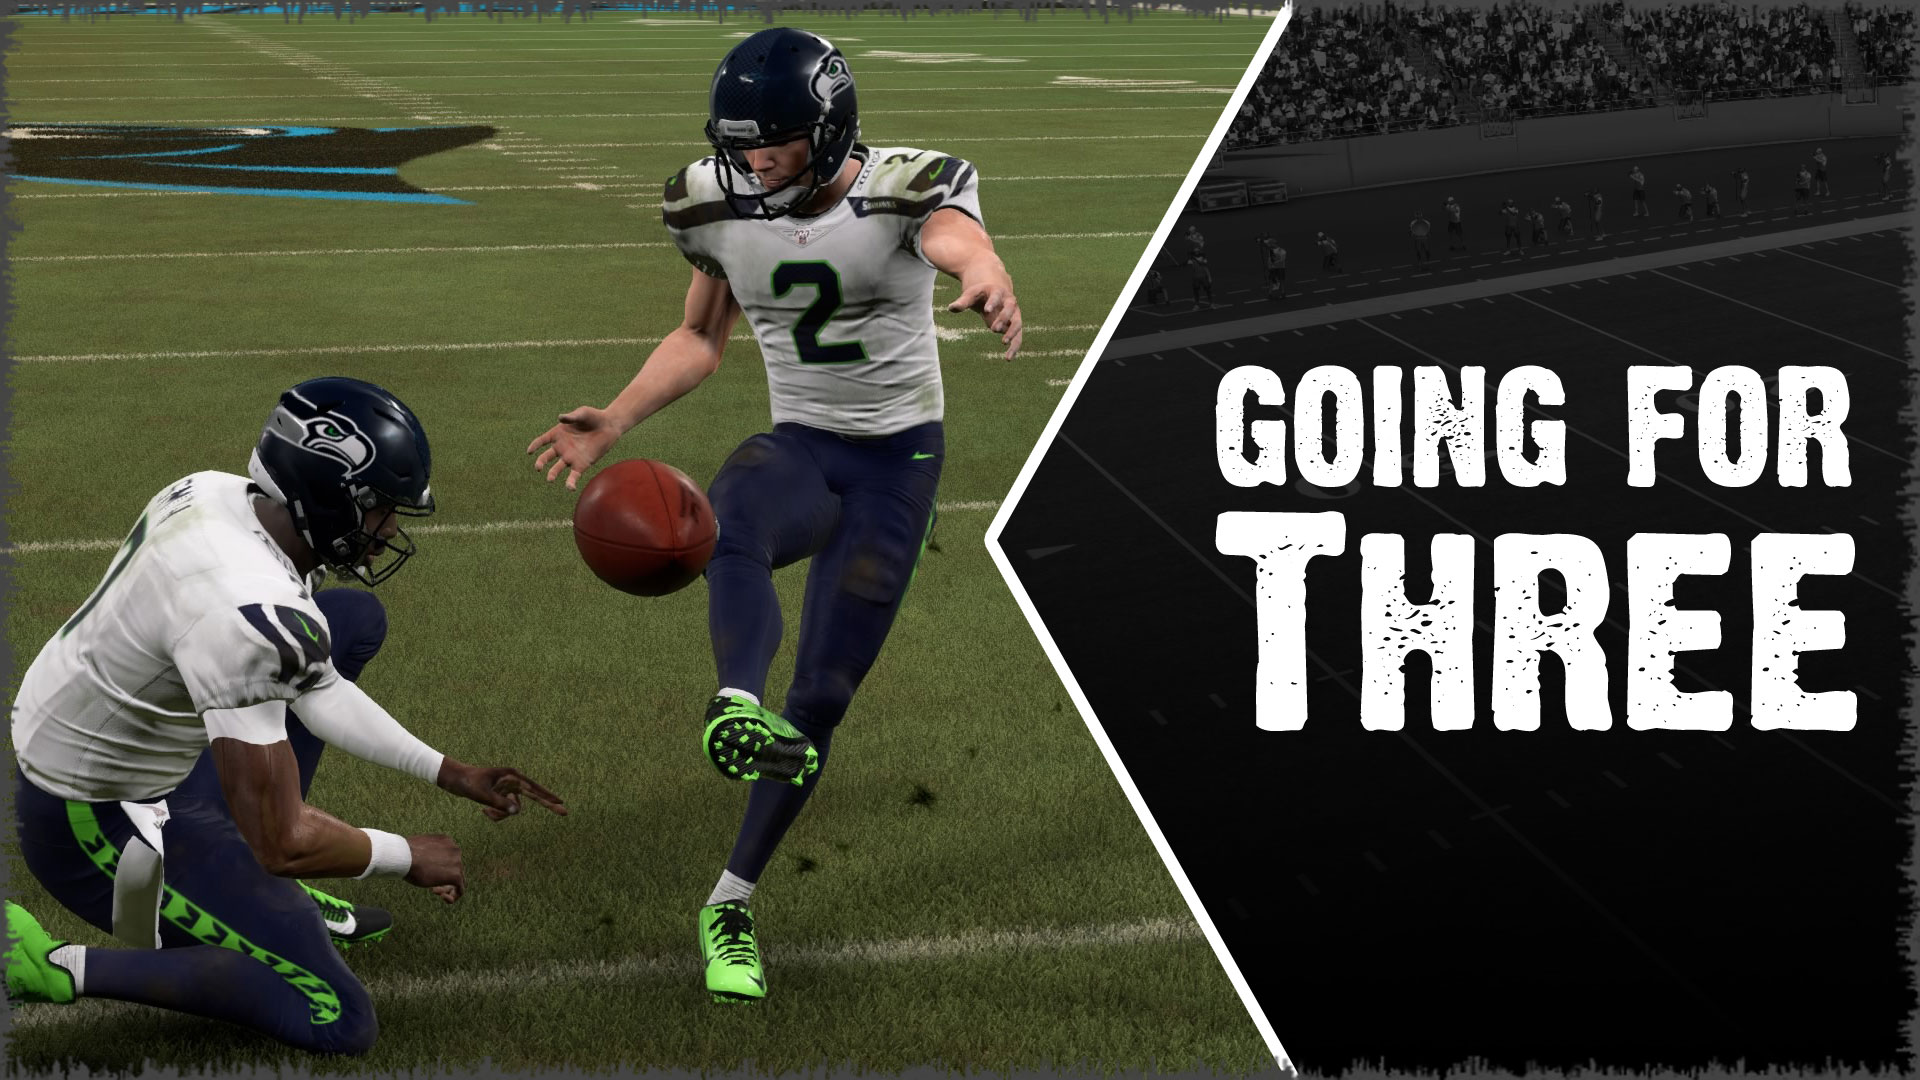 Win more Madden games by kicking field goals when drives stall.